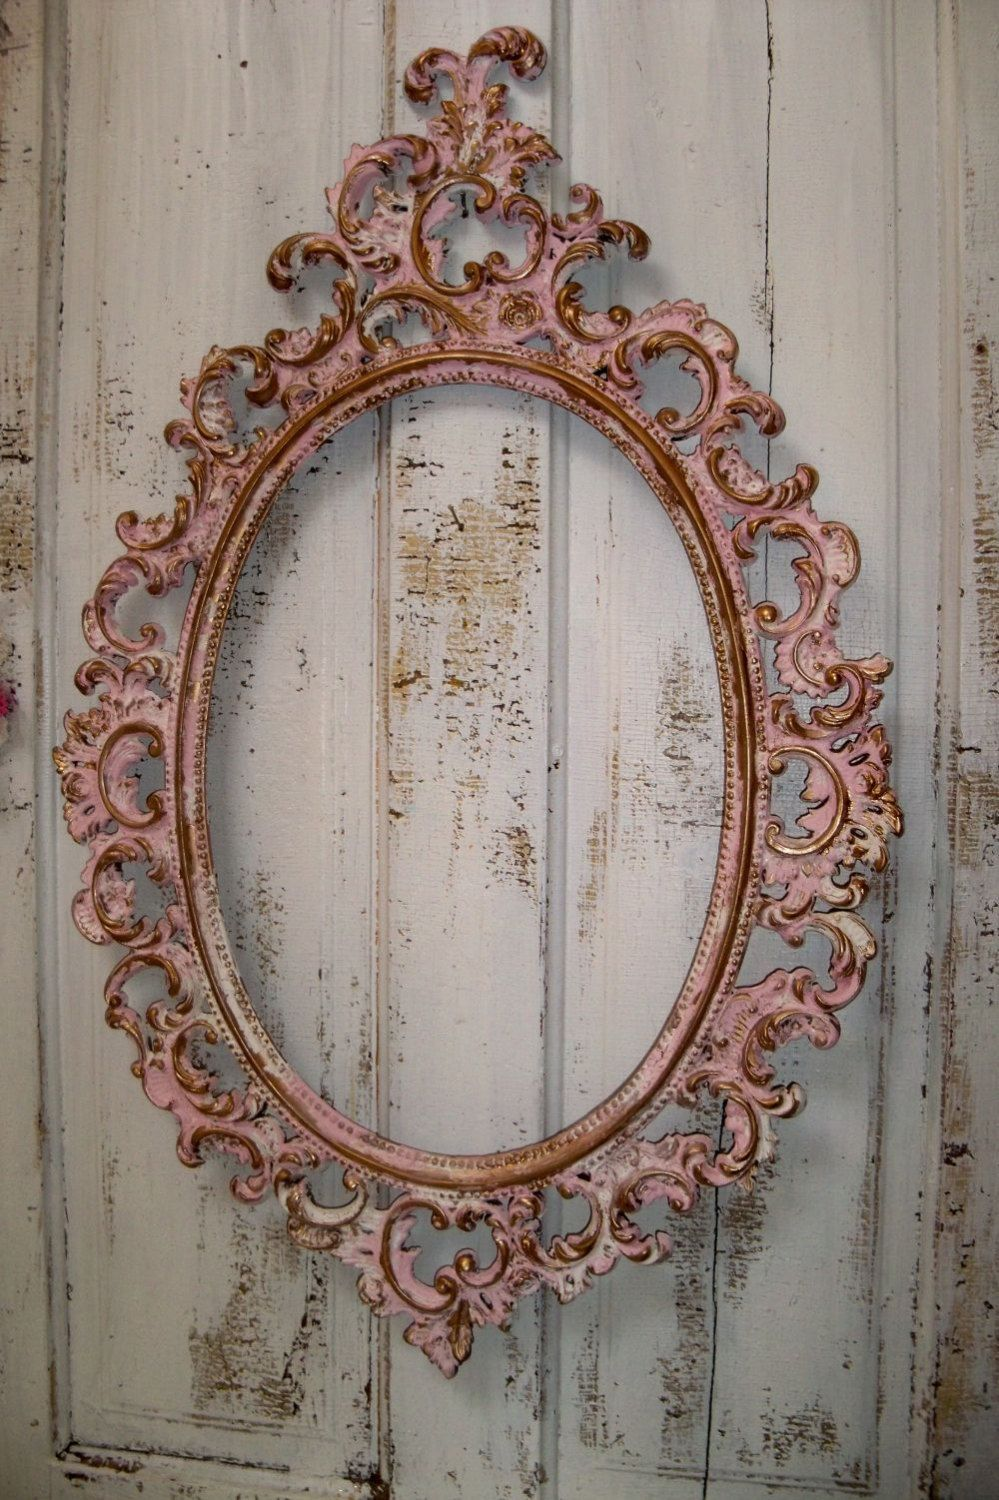 Shabby Chic Wall Decor Pink Ornate Large Frame Accented White Gold Vintage Shabby Chic